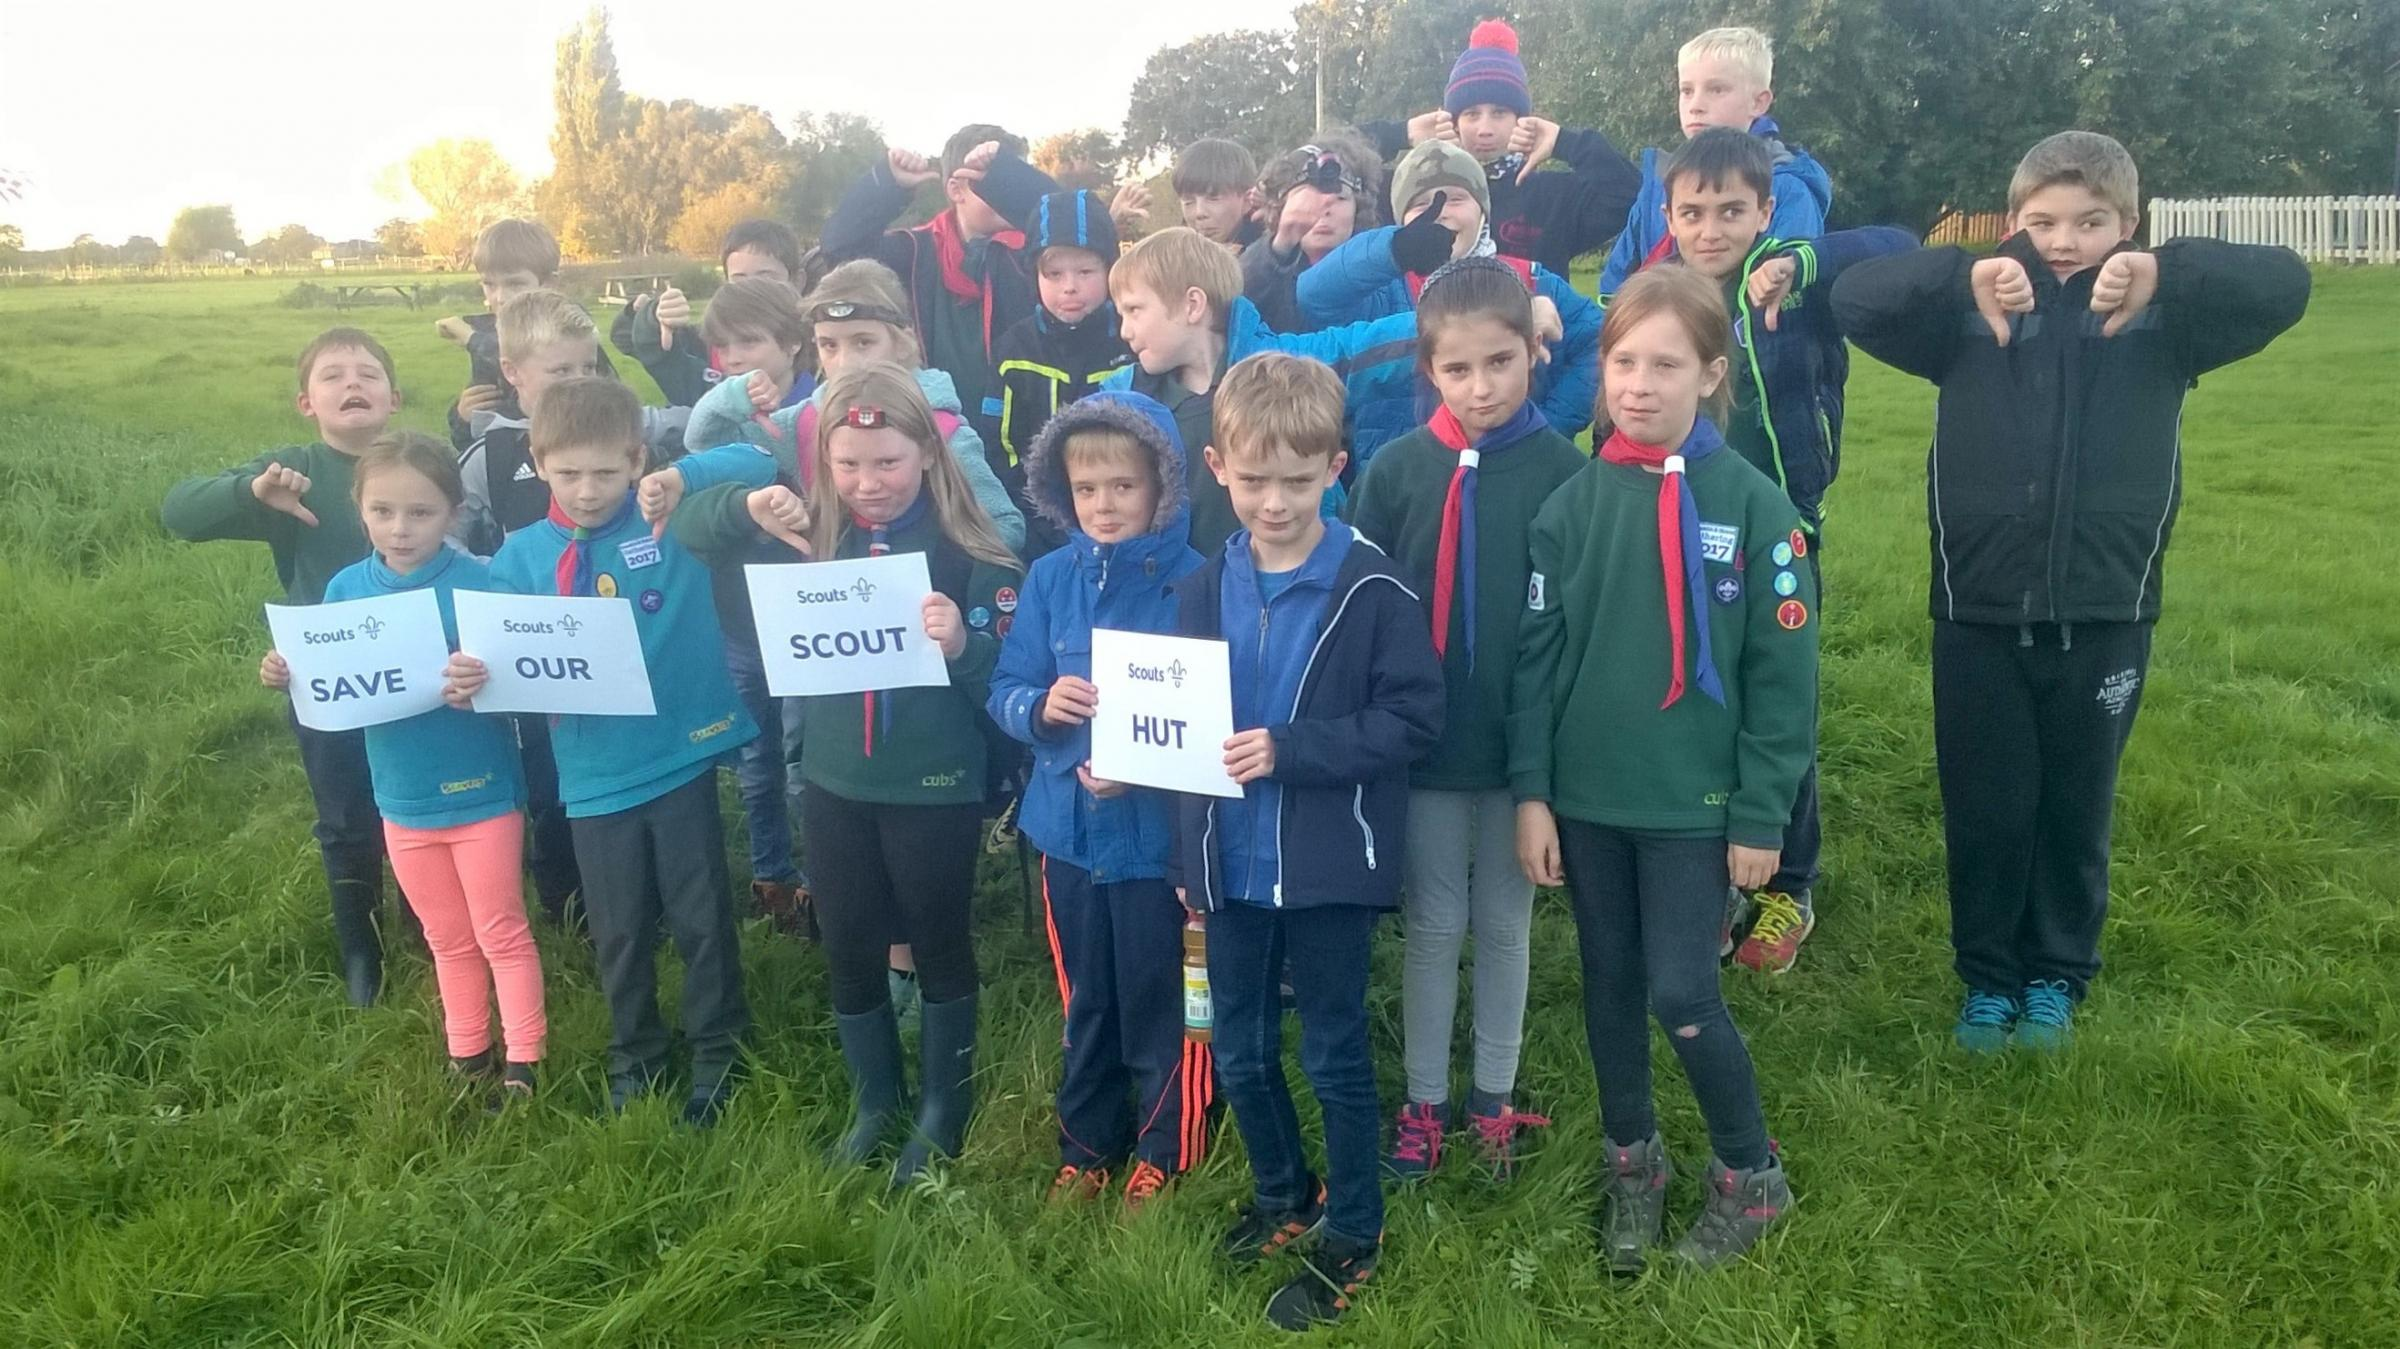 Members of the scout group campaigning against plans